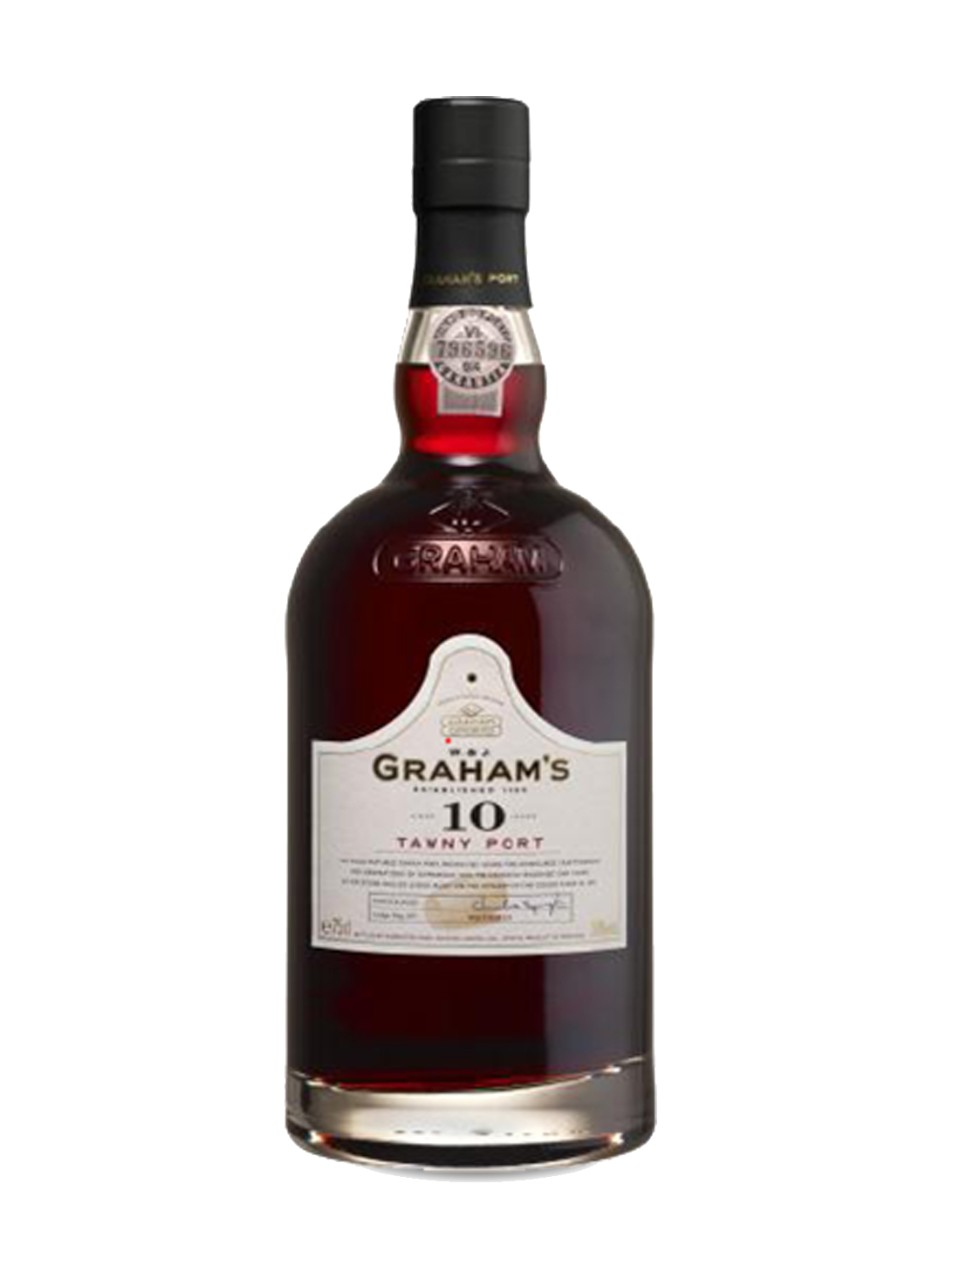 Graham's 10 Years Old Tawny Port from LCBO